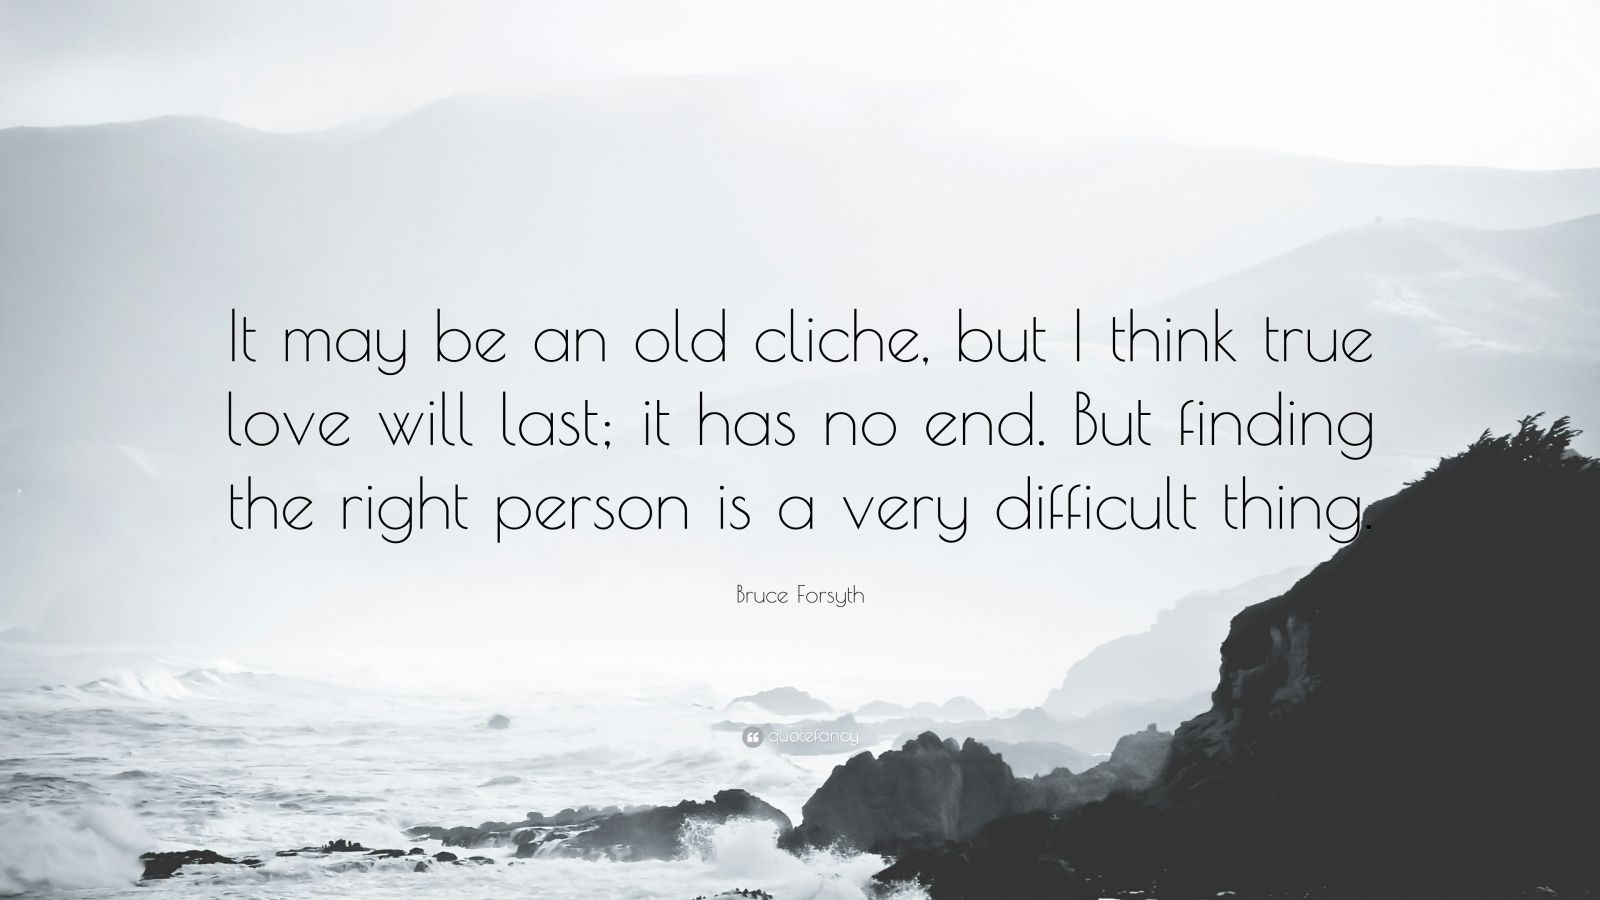 """Bruce Forsyth Quote: """"It may be an old cliche, but I think true love will last; it has no end. But finding the right person is a very difficult thing."""""""